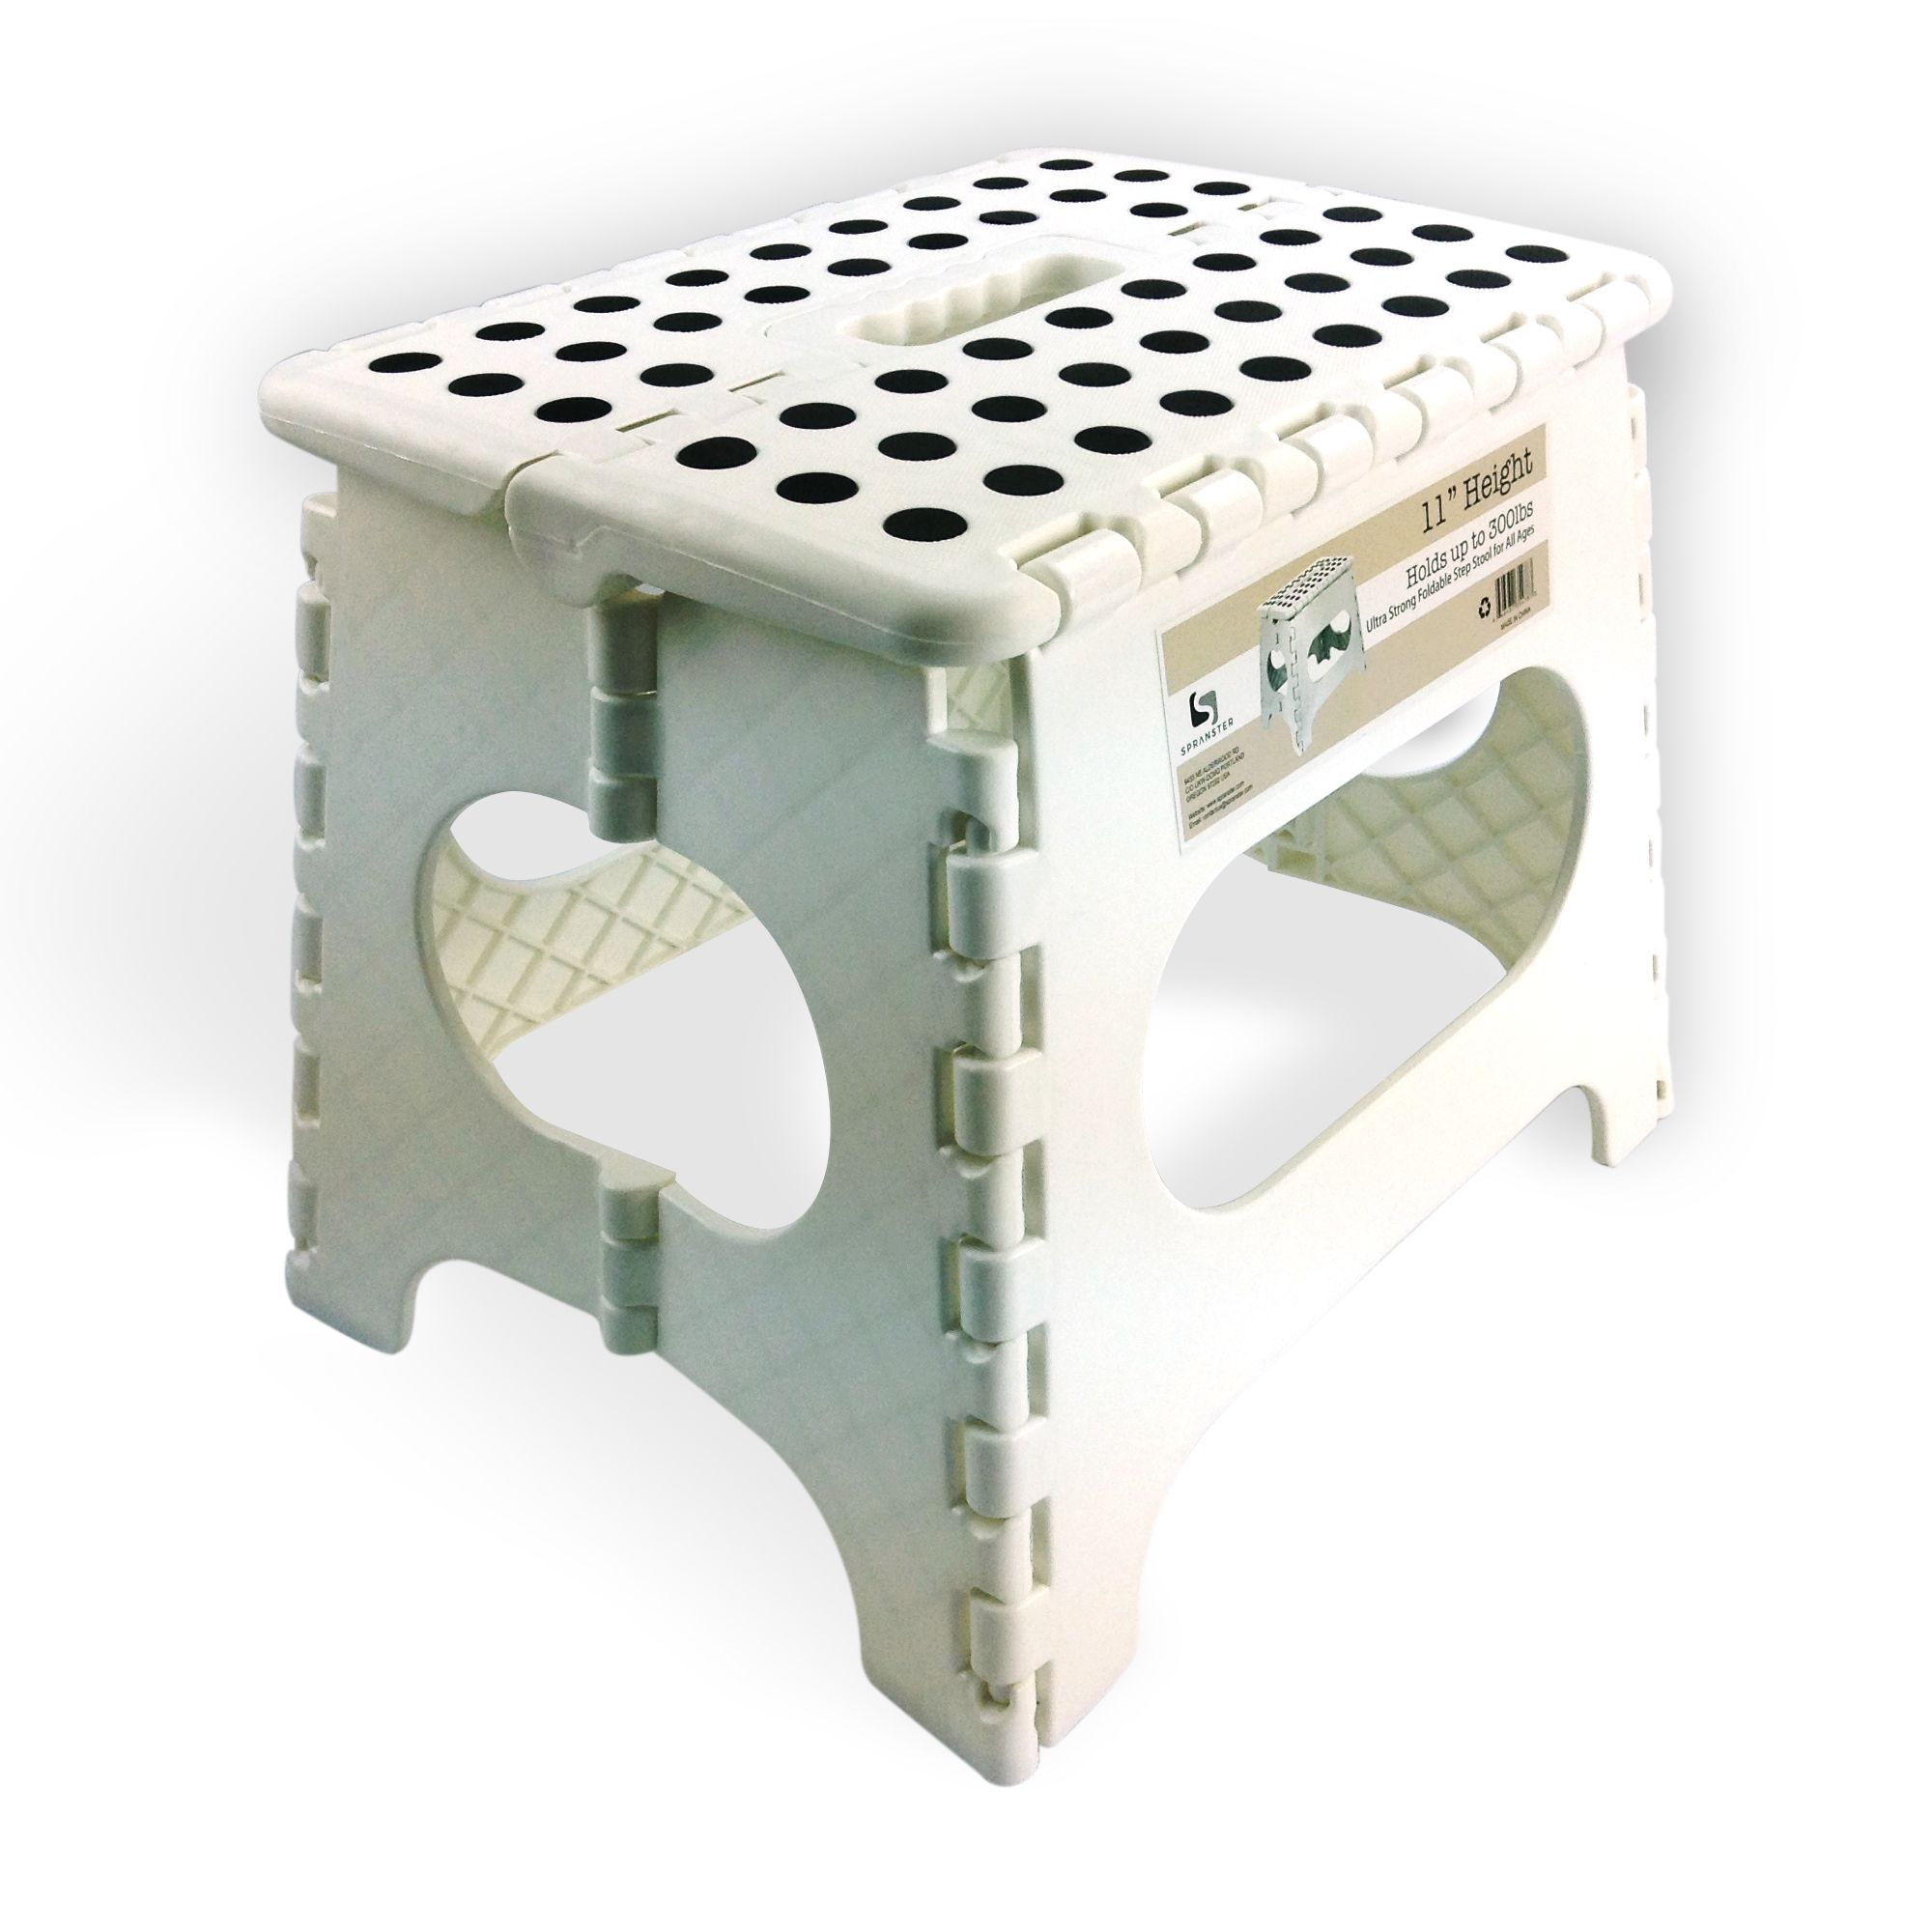 Terrific Spranster White Folding Step Stool 11 High The Pabps2019 Chair Design Images Pabps2019Com